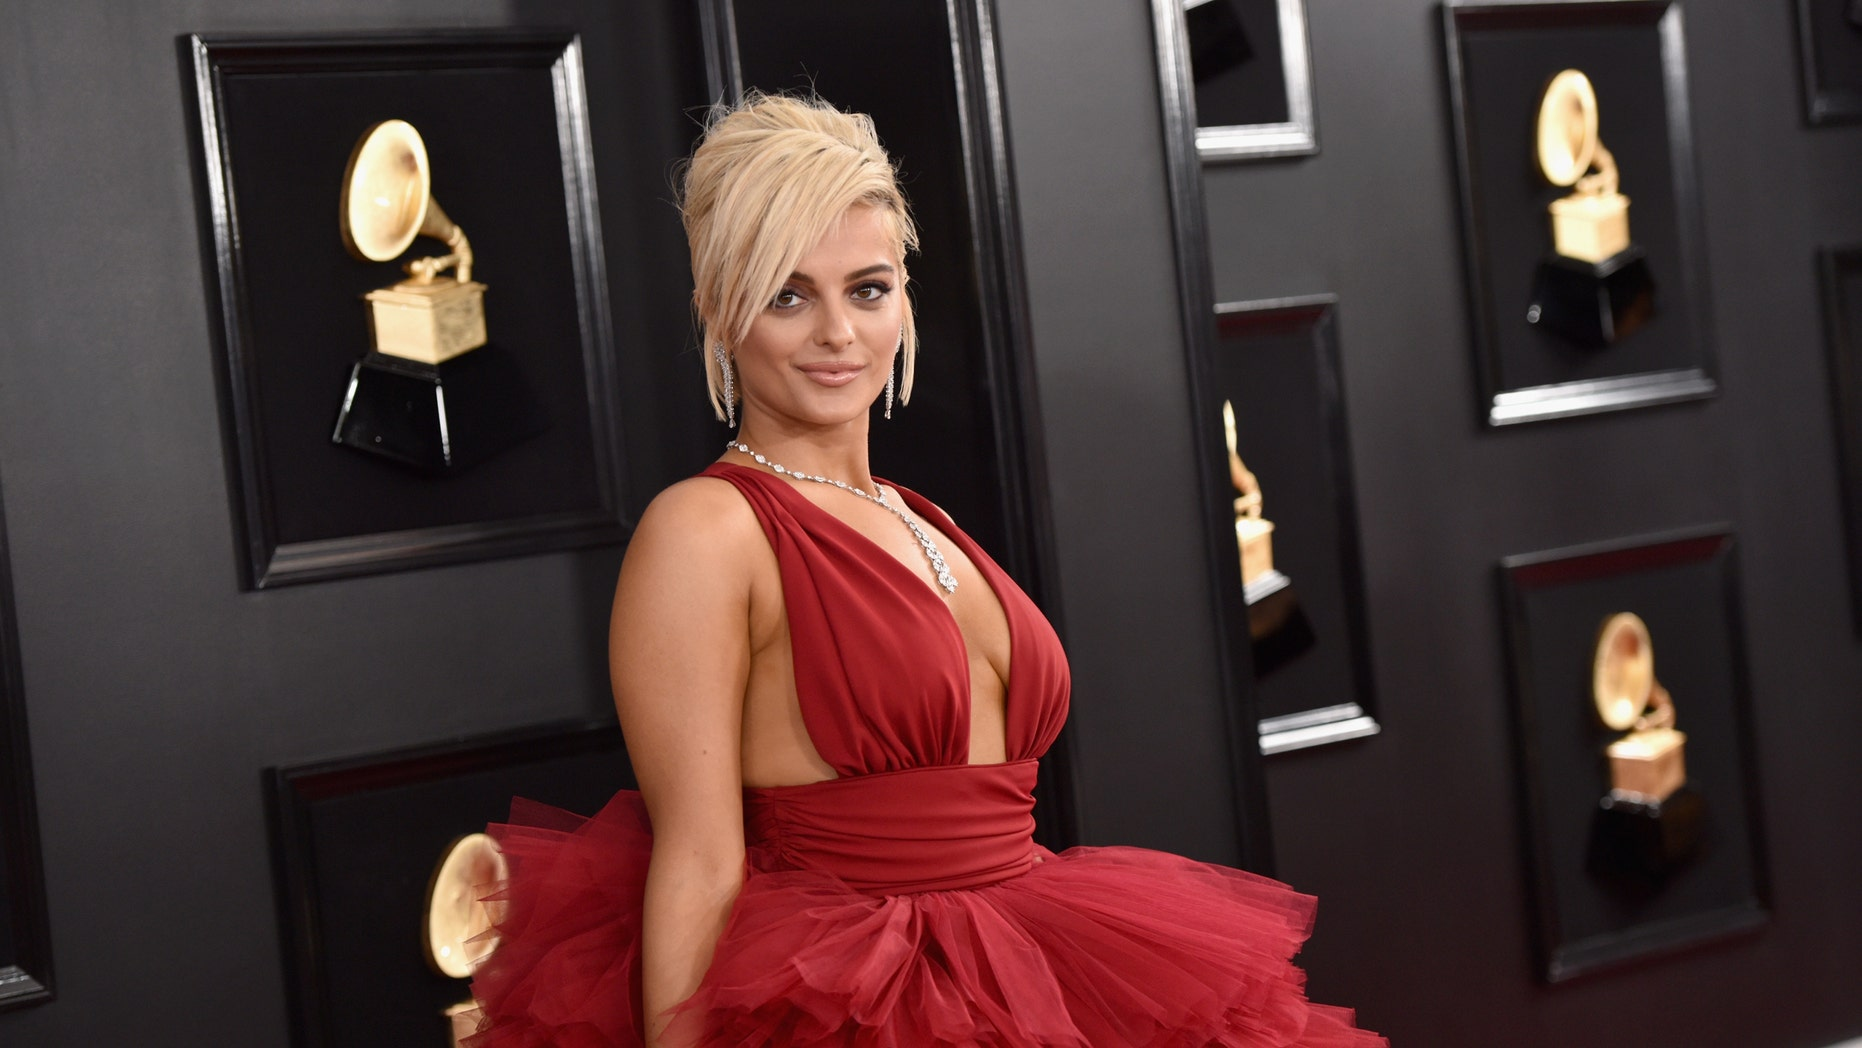 Bebe Rexha attends the 61st Annual GRAMMY Awards at Staples Center on February 10, 2019 in Los Angeles, California.